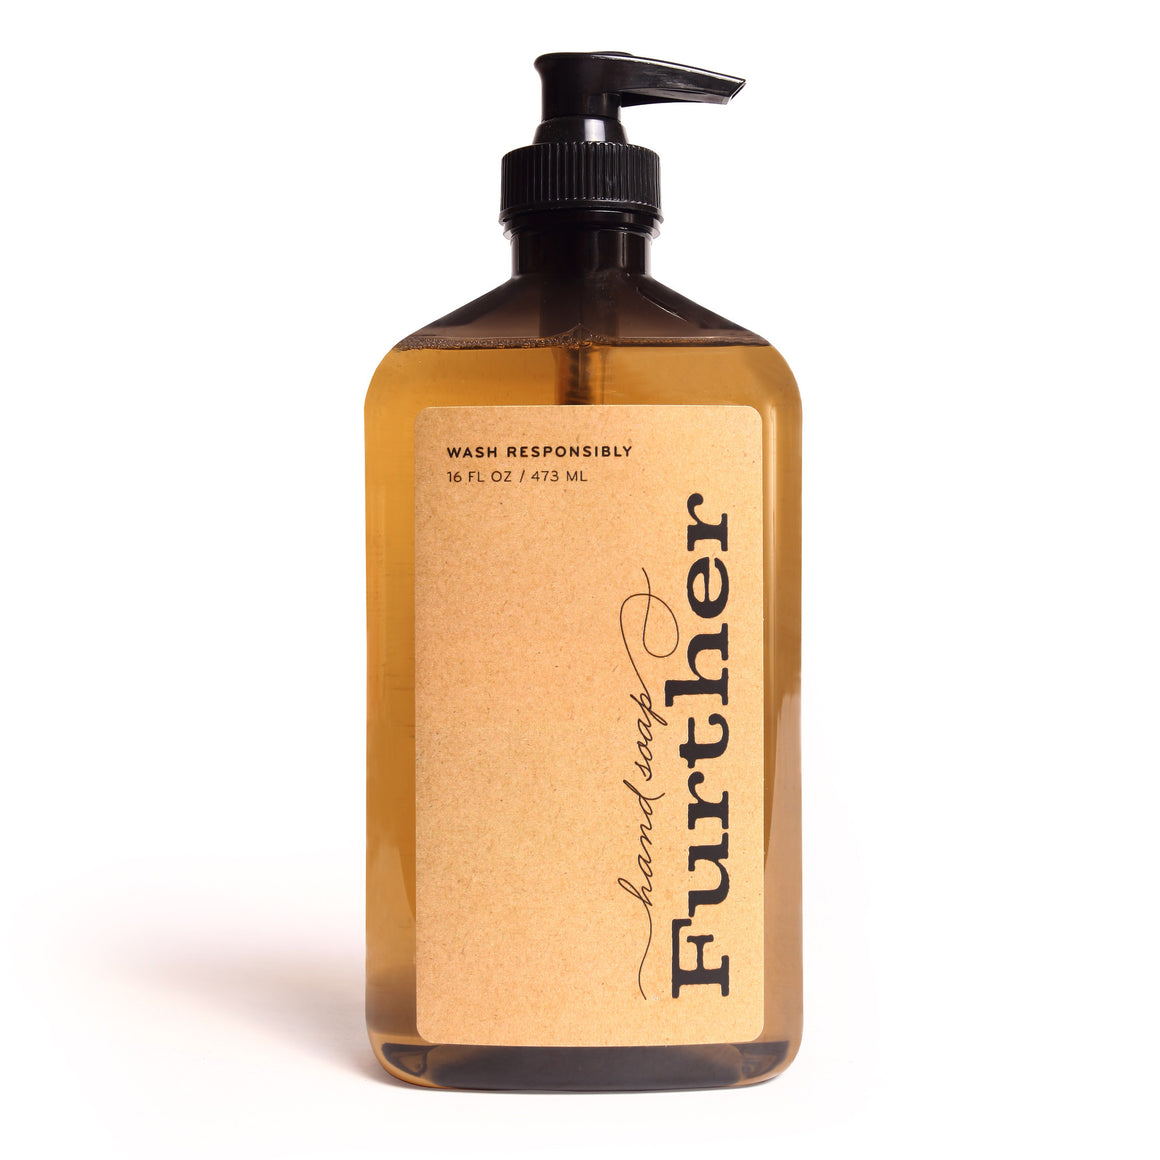 16 oz Hand Soap – Further Glycerin Soap